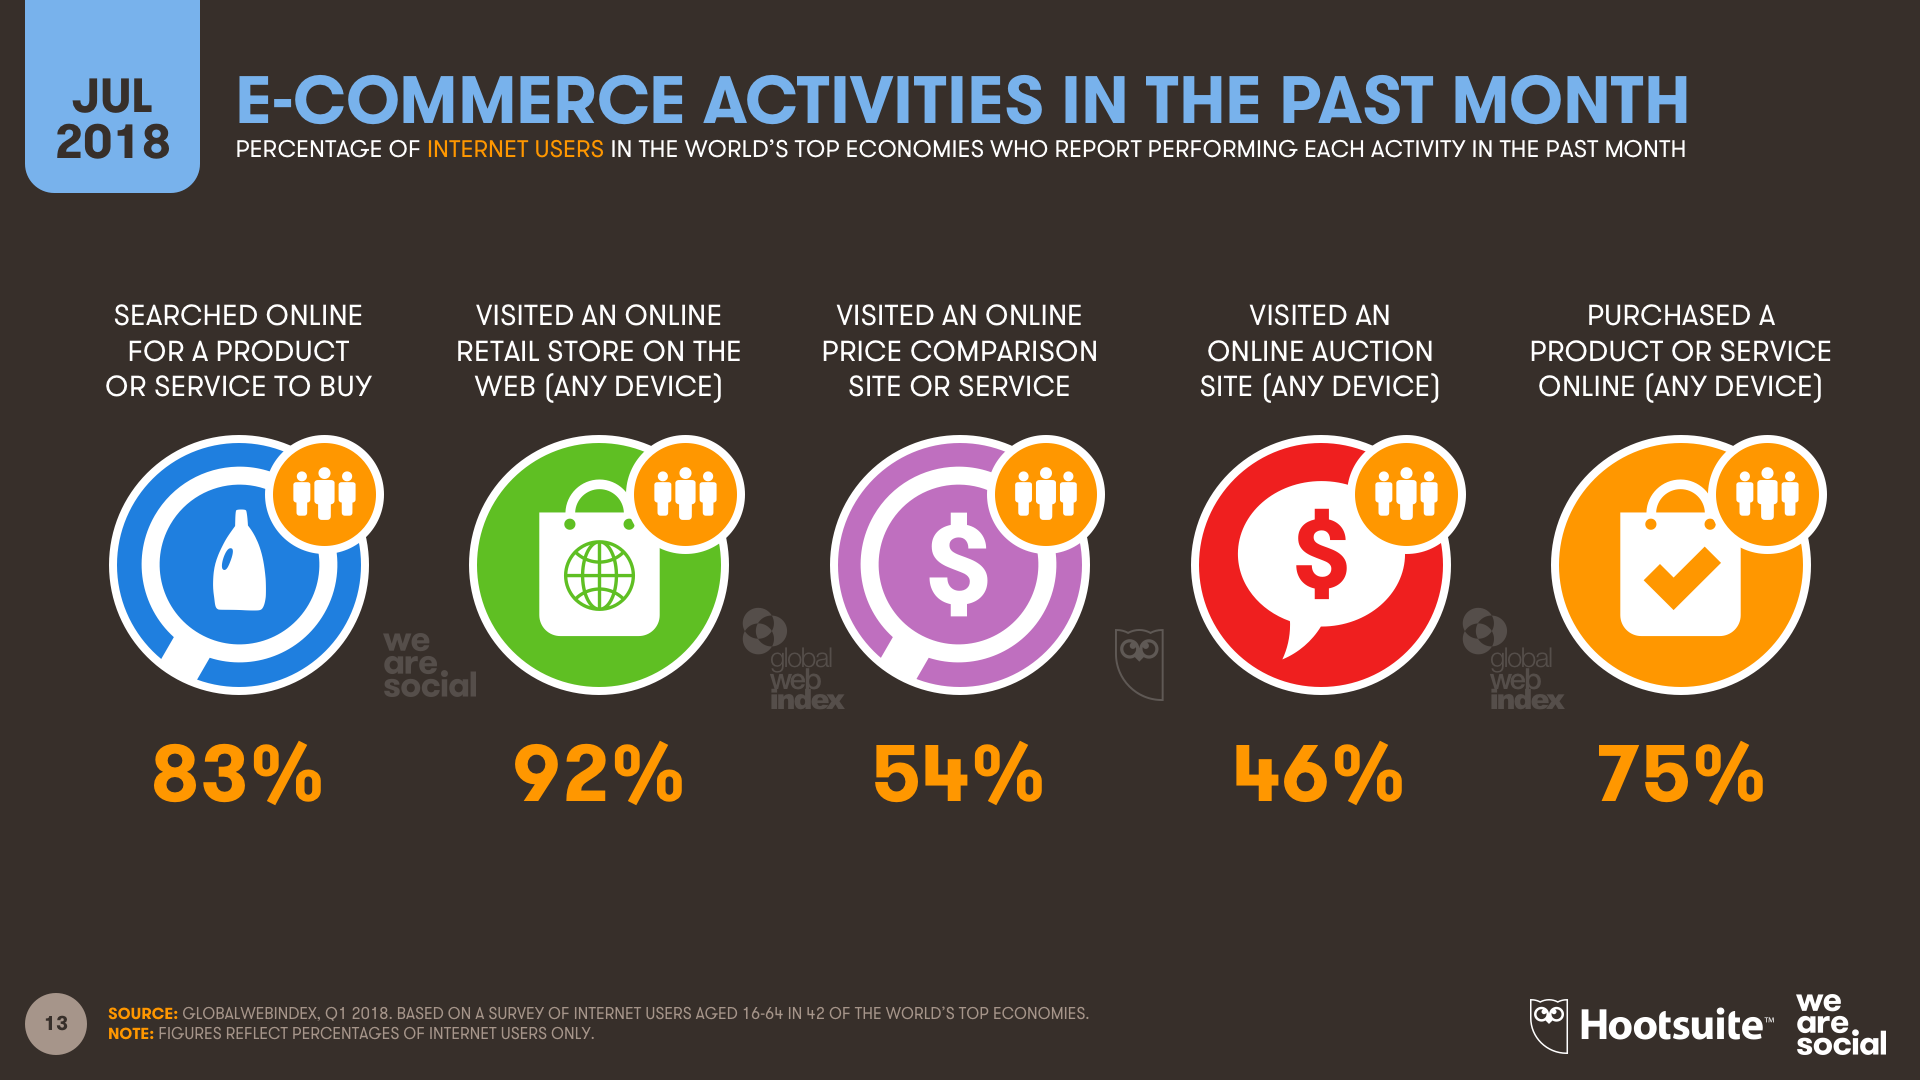 Q3 2018 - E-Commerce Activities